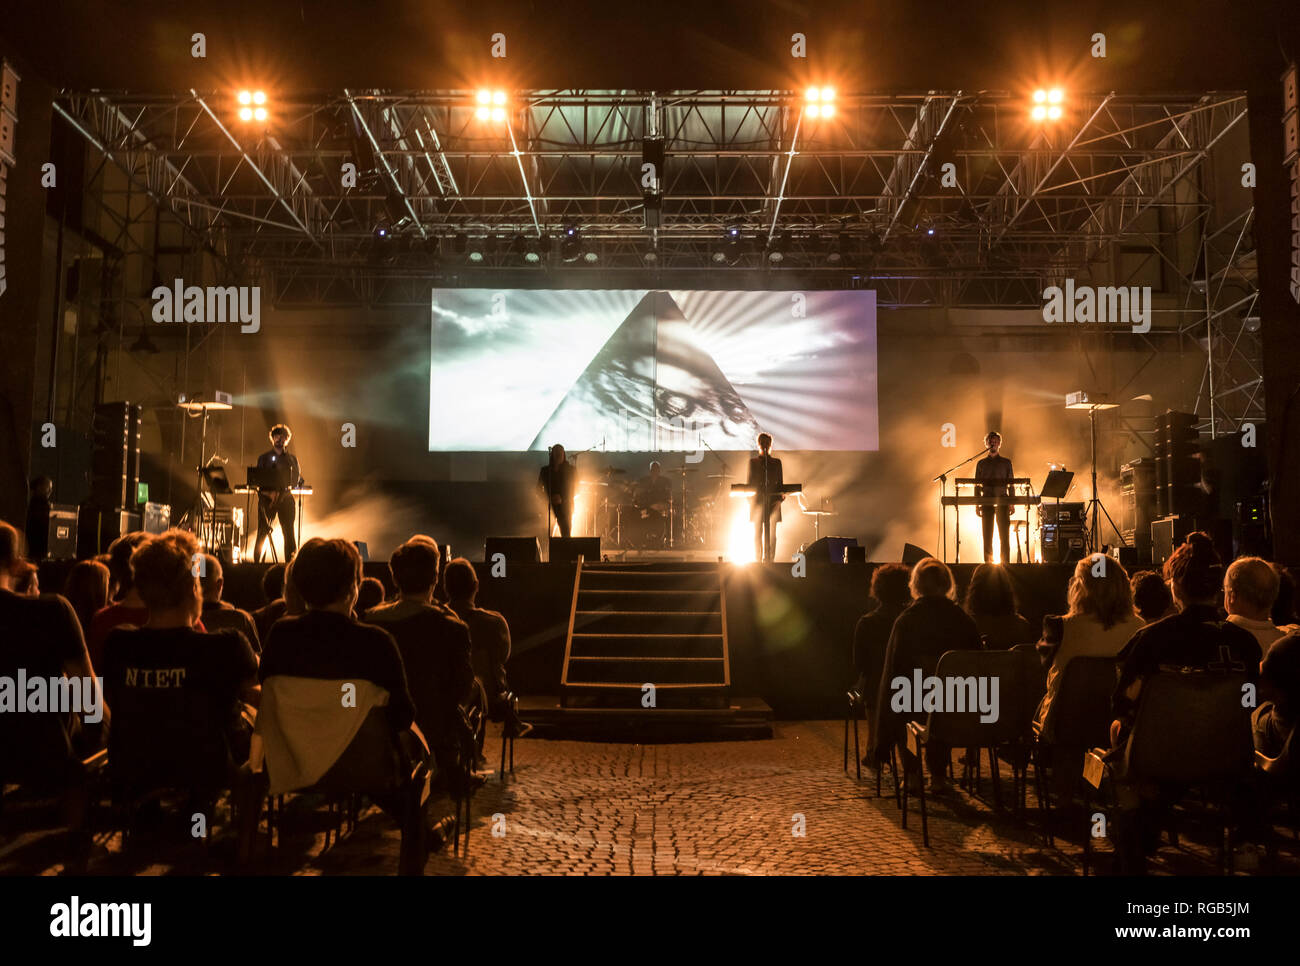 The slovenian band Laibach performing live for MITTELFEST 2017 in Cividale, Italy. - Stock Image